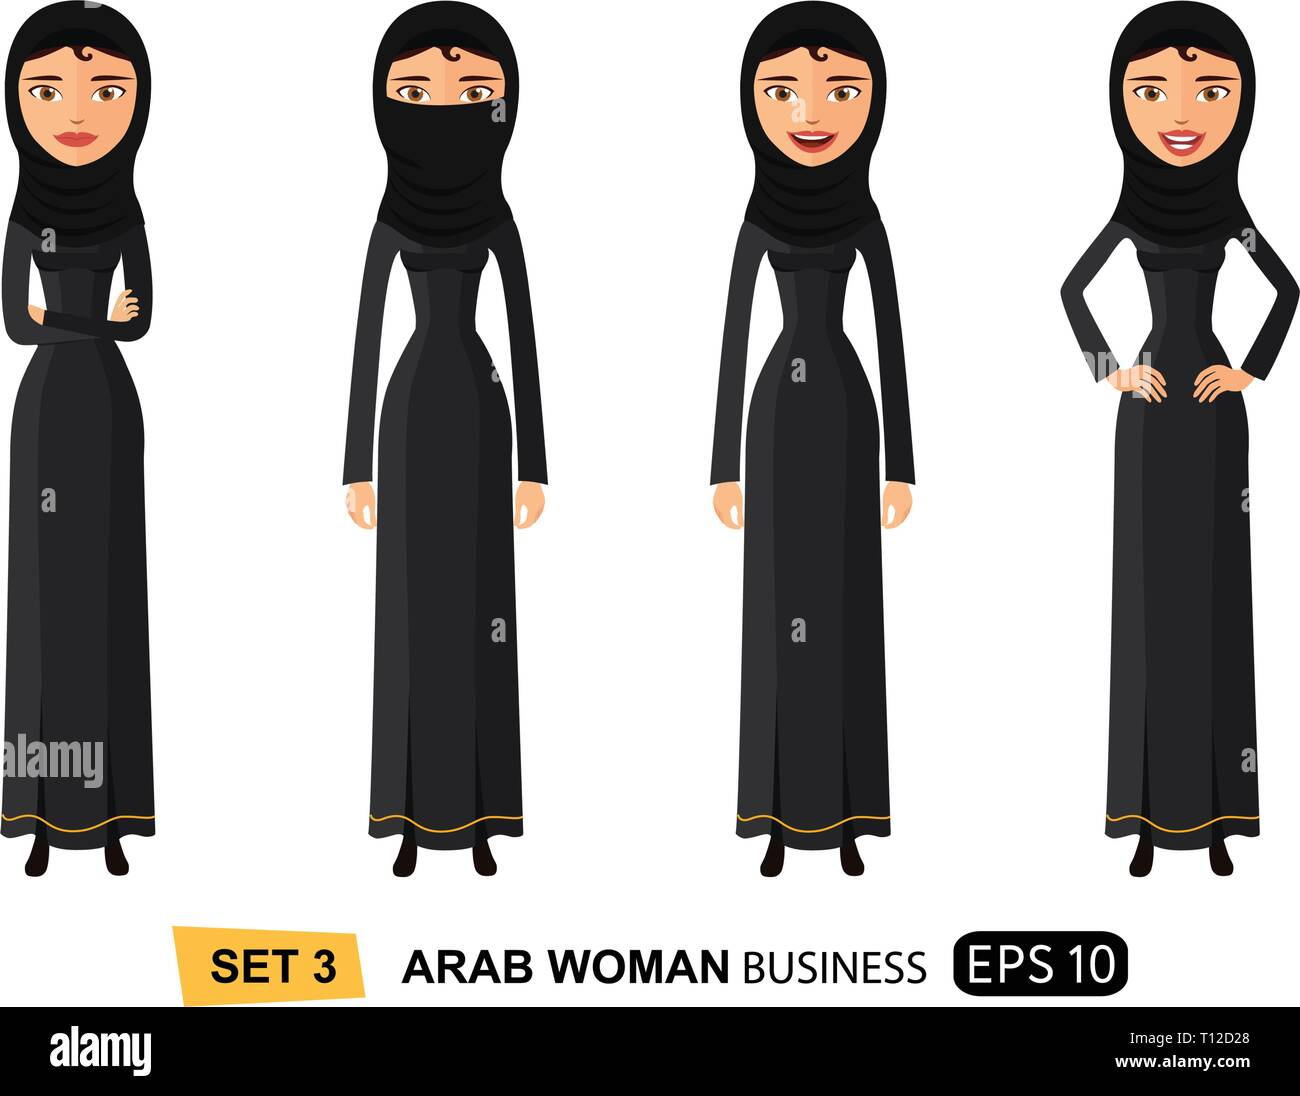 Arab business woman in a hijab with natural curly hair flat cartoon vector illustration isolated on white eps 10 - Stock Vector